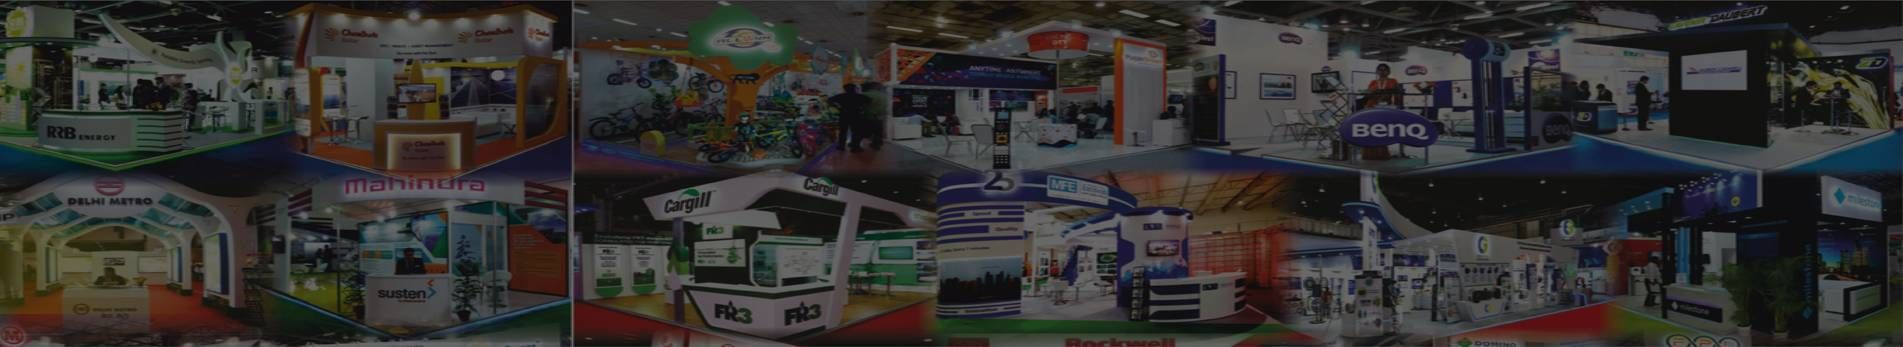 Promote Your Brand with Creative and Distinctive Exhibition Stall Design - Panache Exhibitions